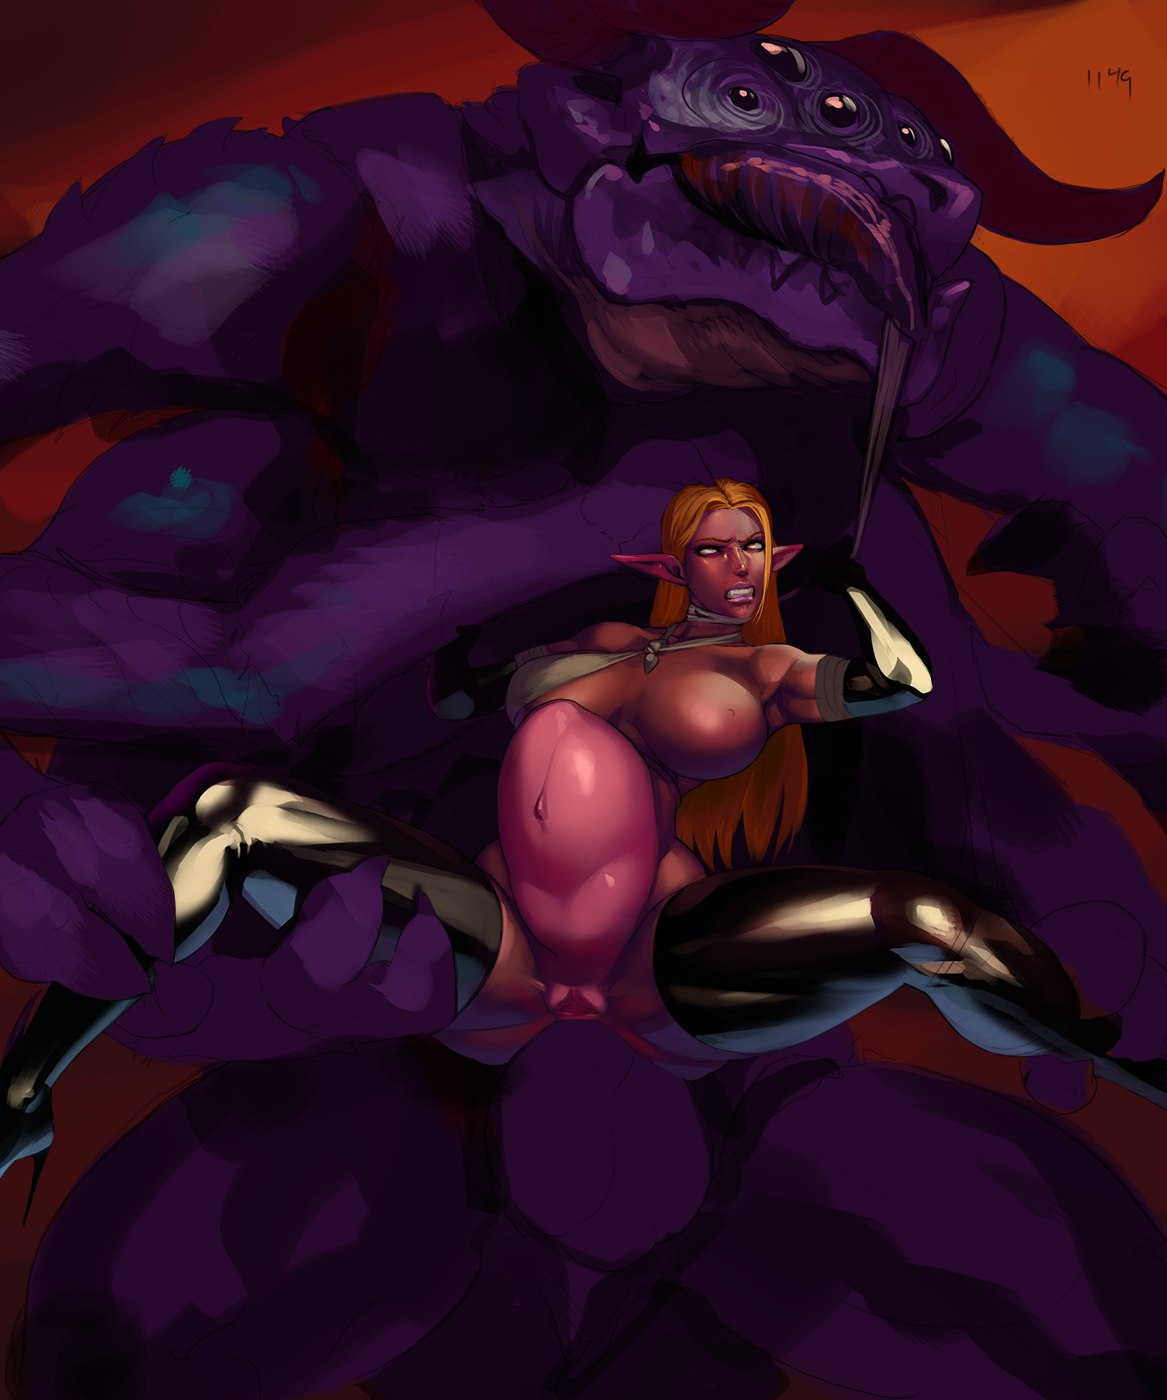 demon queen and mage malori Wander over yonder lord dominator porn